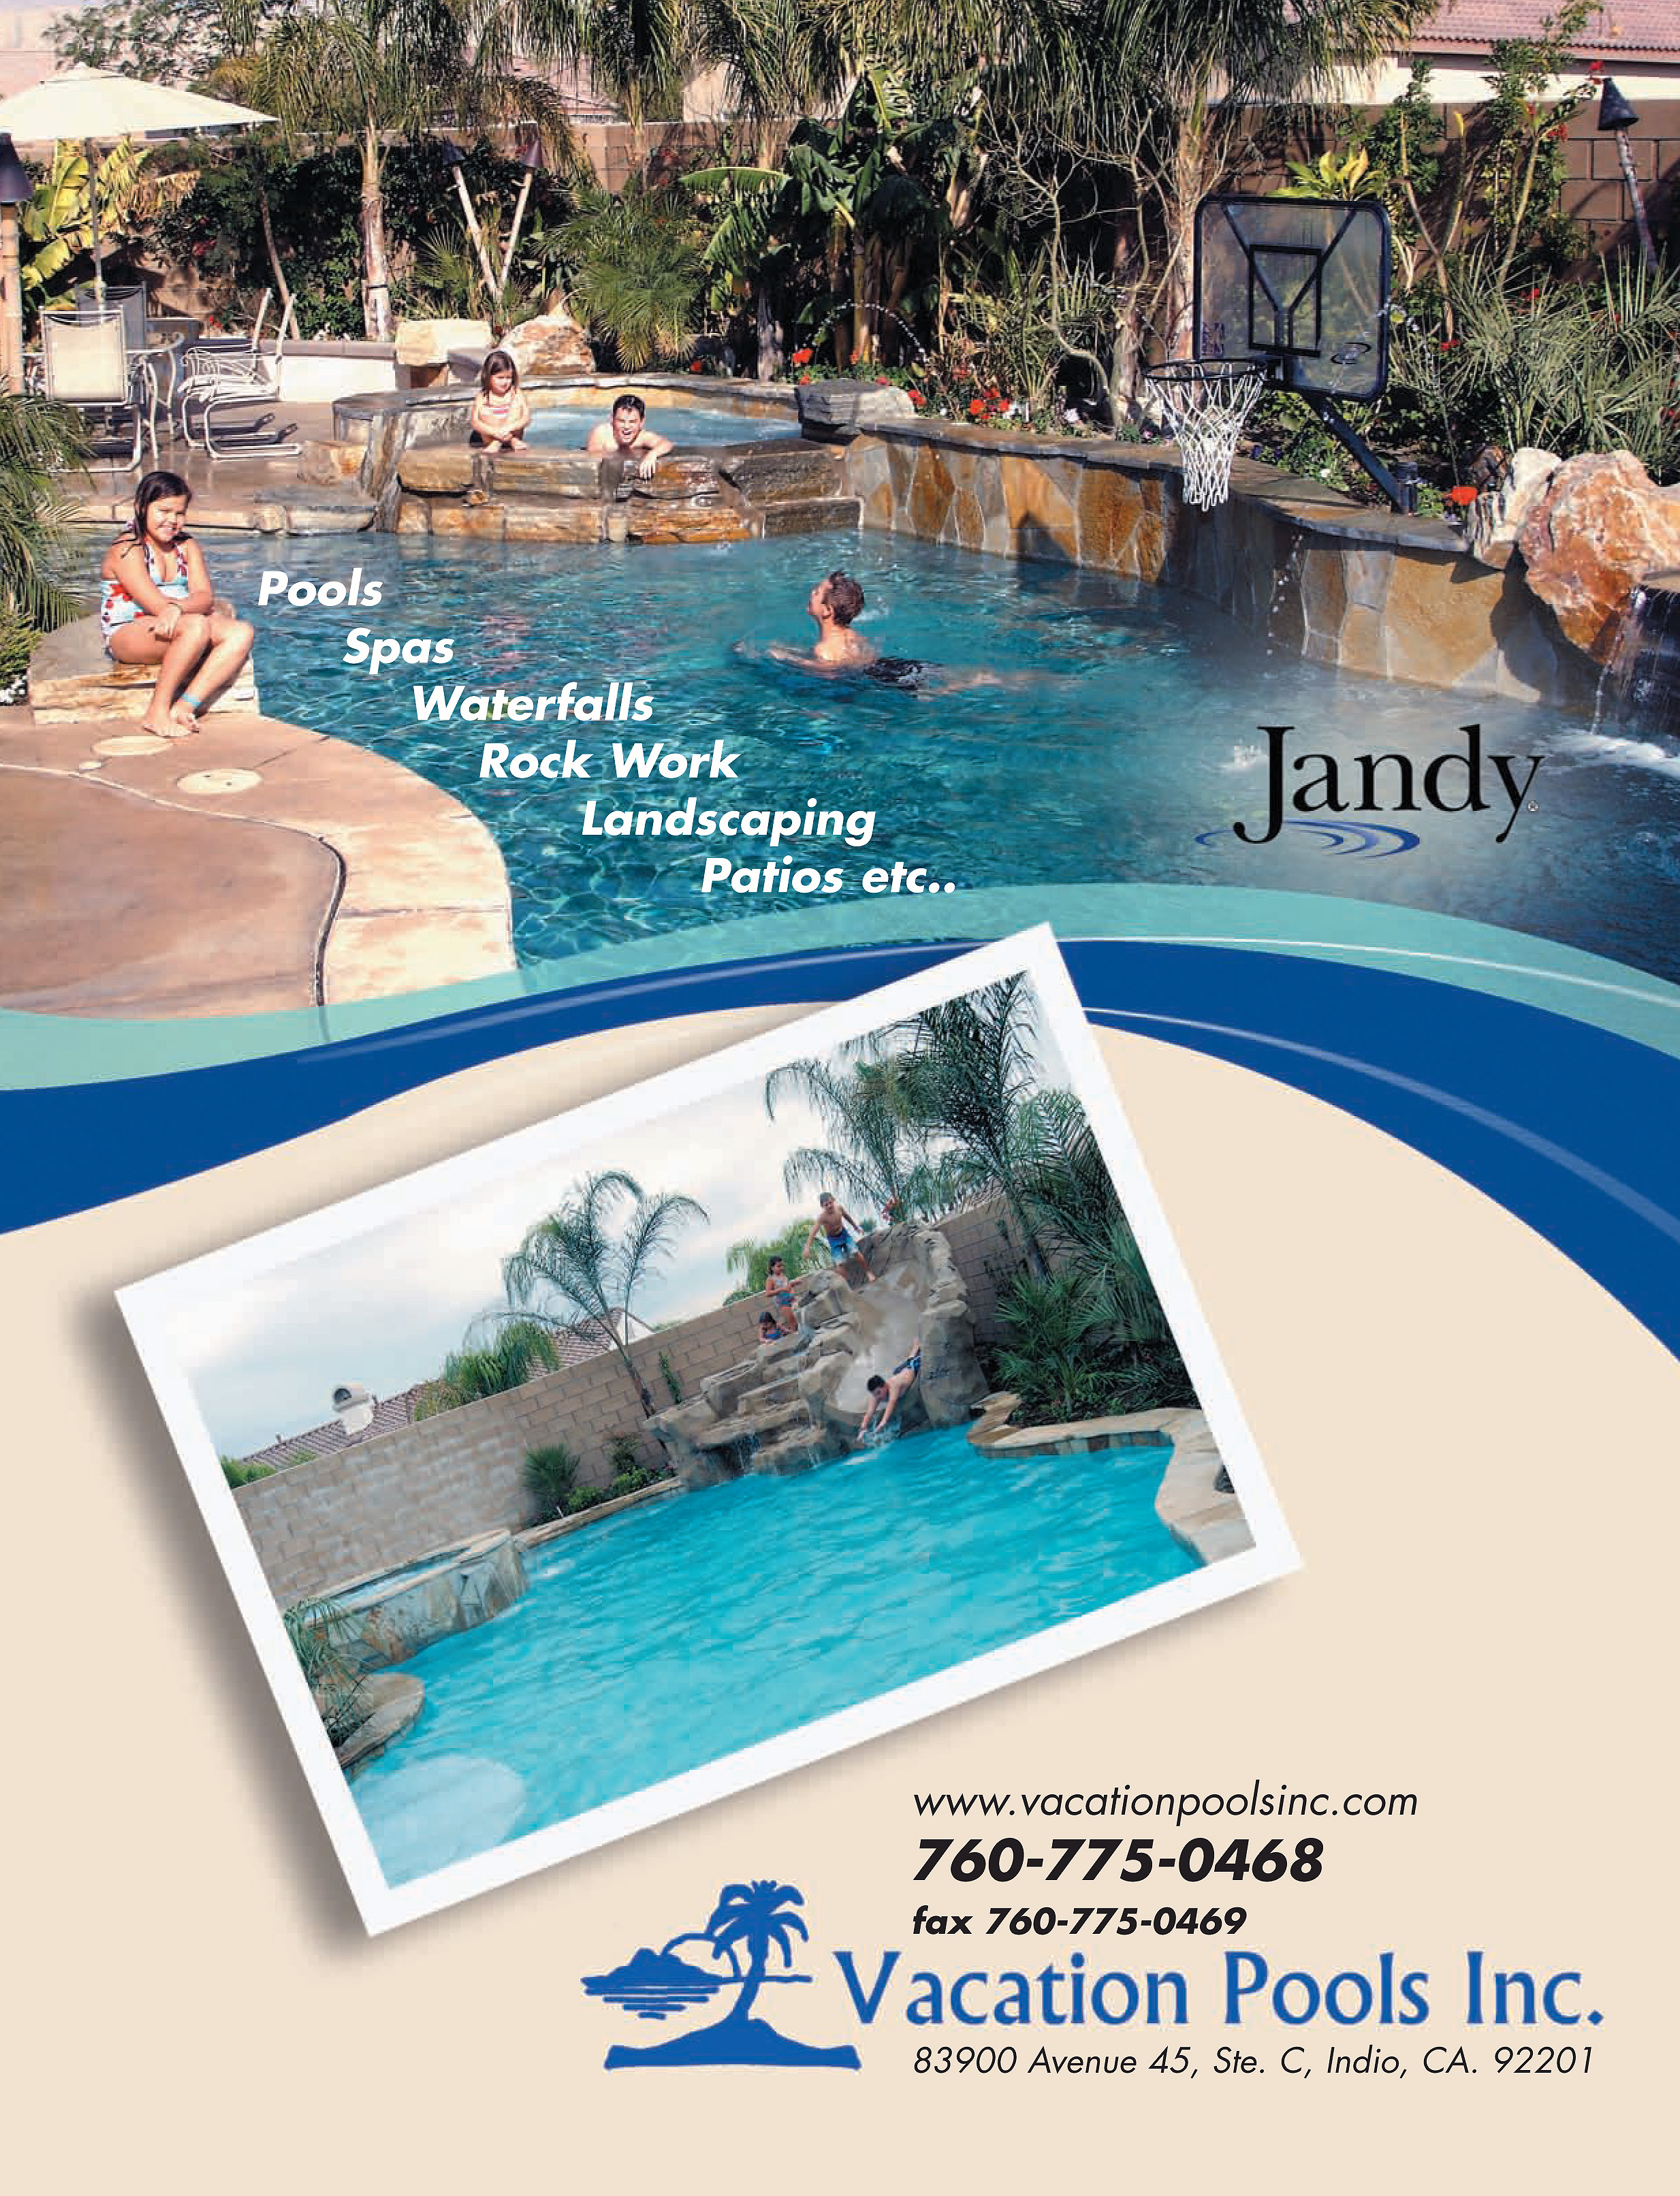 Swimming Pools Indio CA | Hot Tubs, Spas, Pools Palm Springs CA